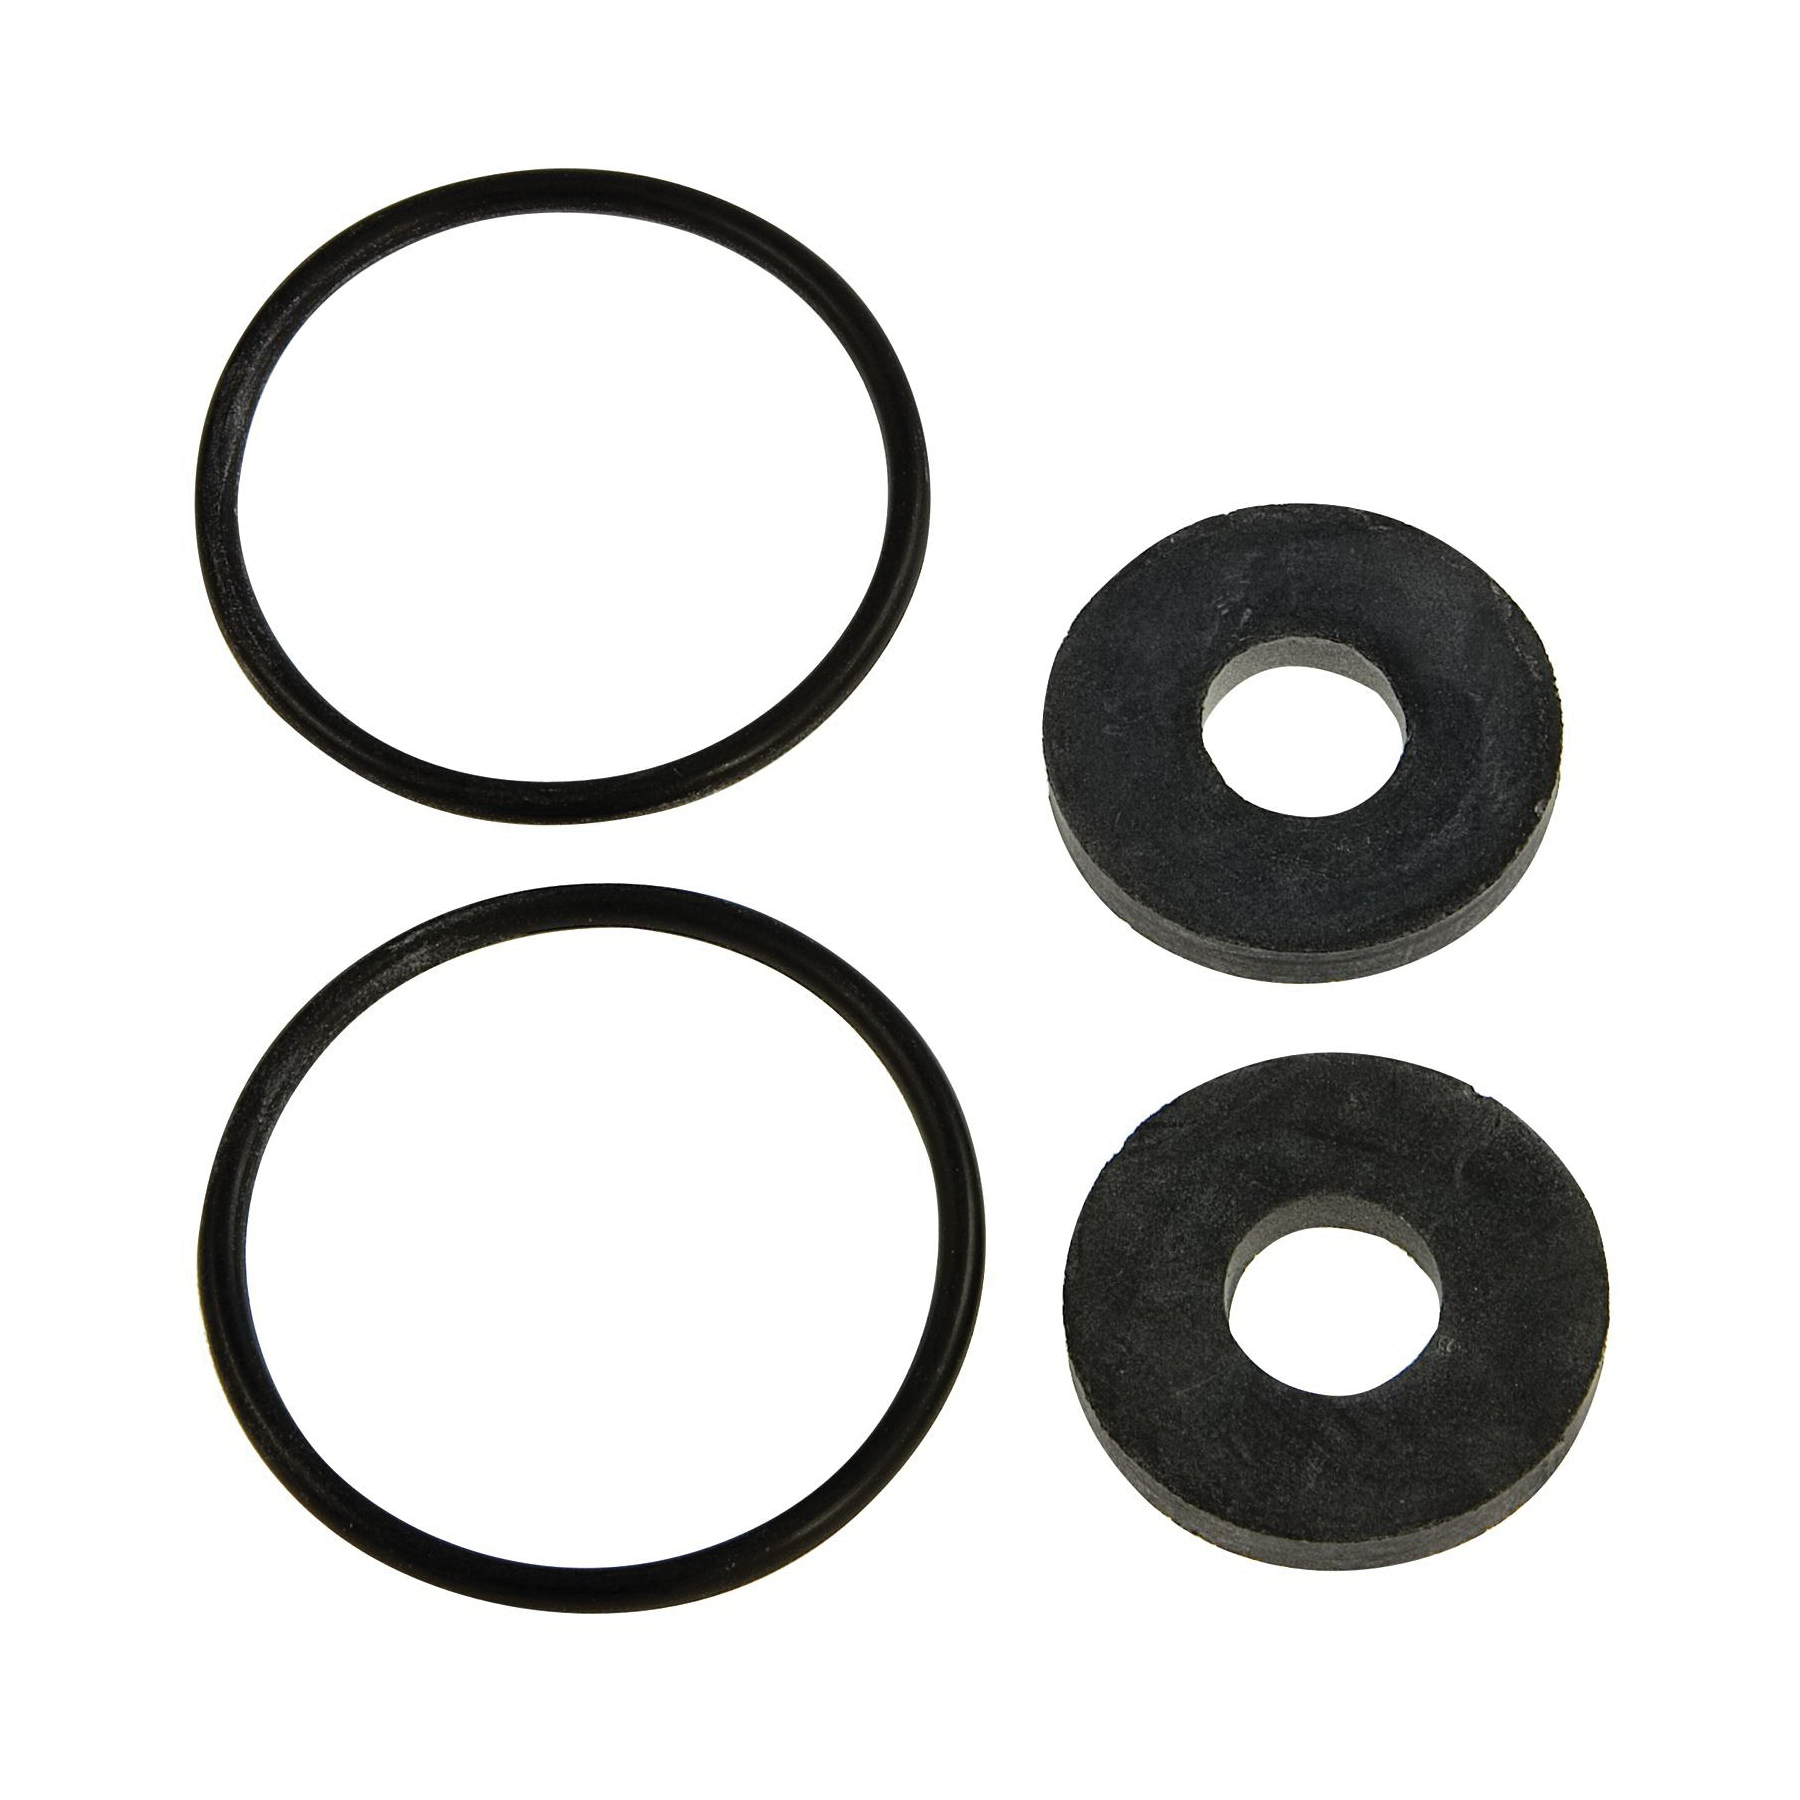 Febco® 905053 Check Rubber Parts Kit, For Use With 805Y/825Y 1-1/2 in and 2 in Wye-Pattern Design Double Check Valve Assemblies